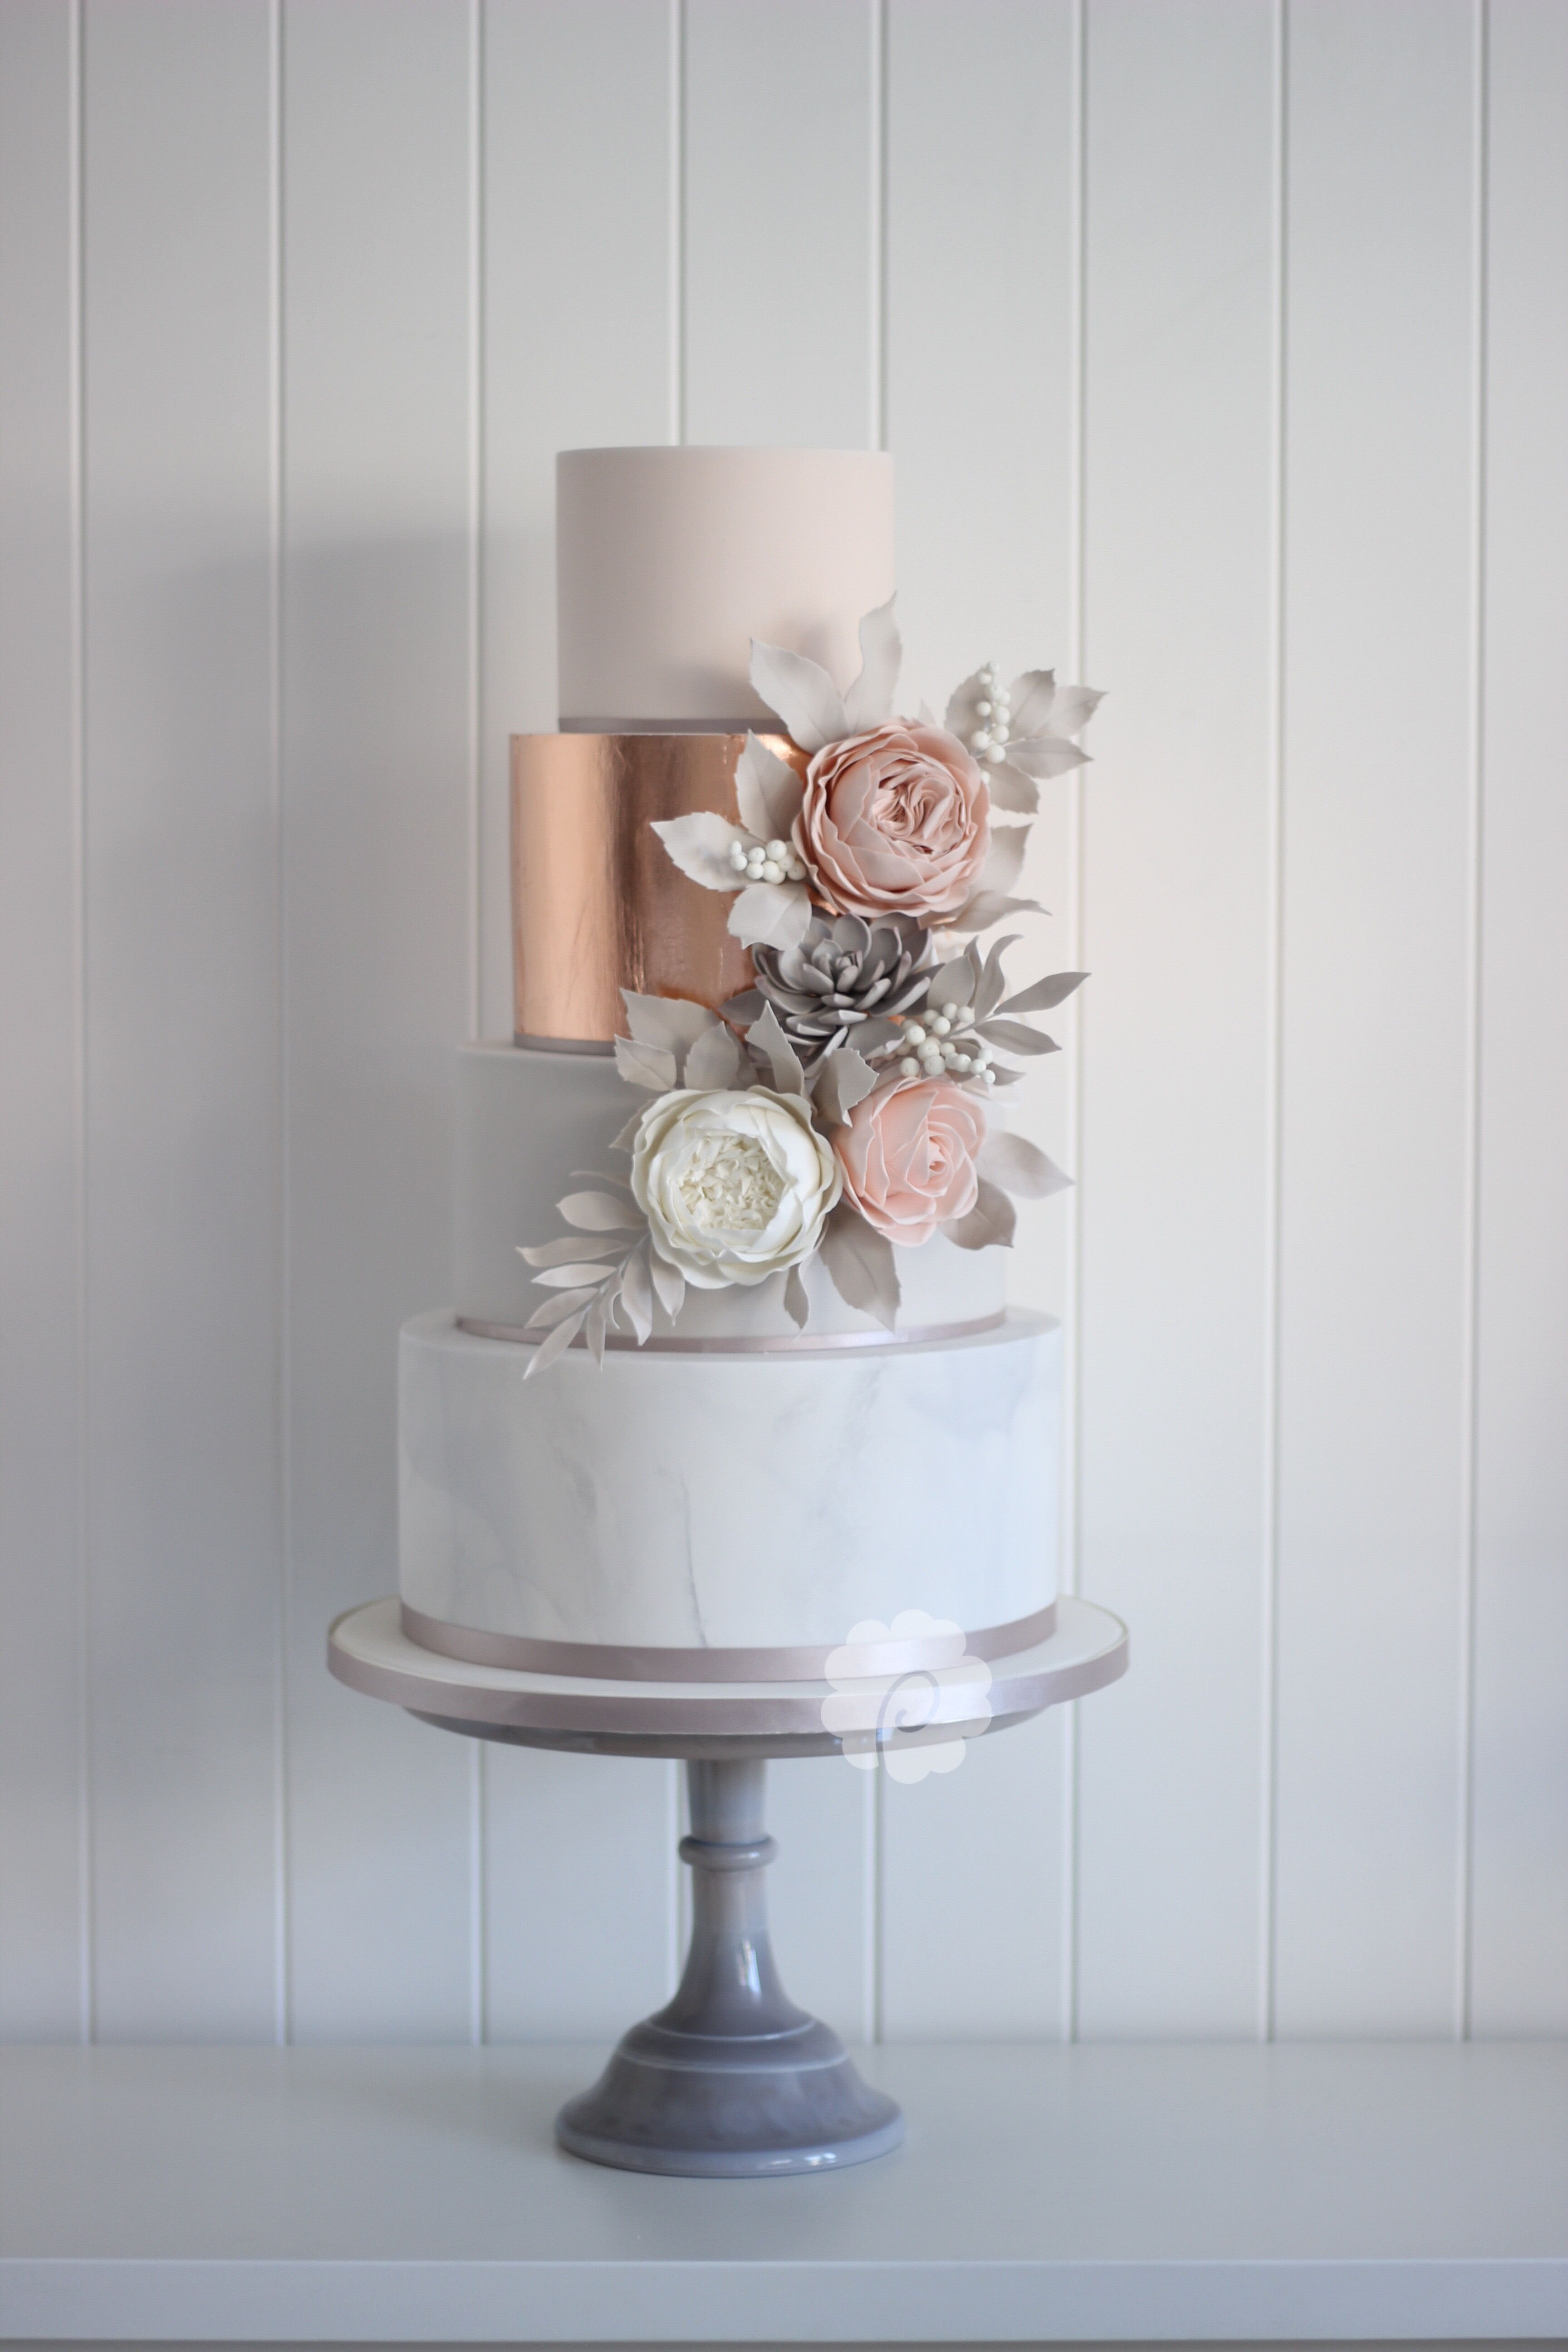 Modern Rose Gold Marble Wedding Cake With Sugar Flowers And